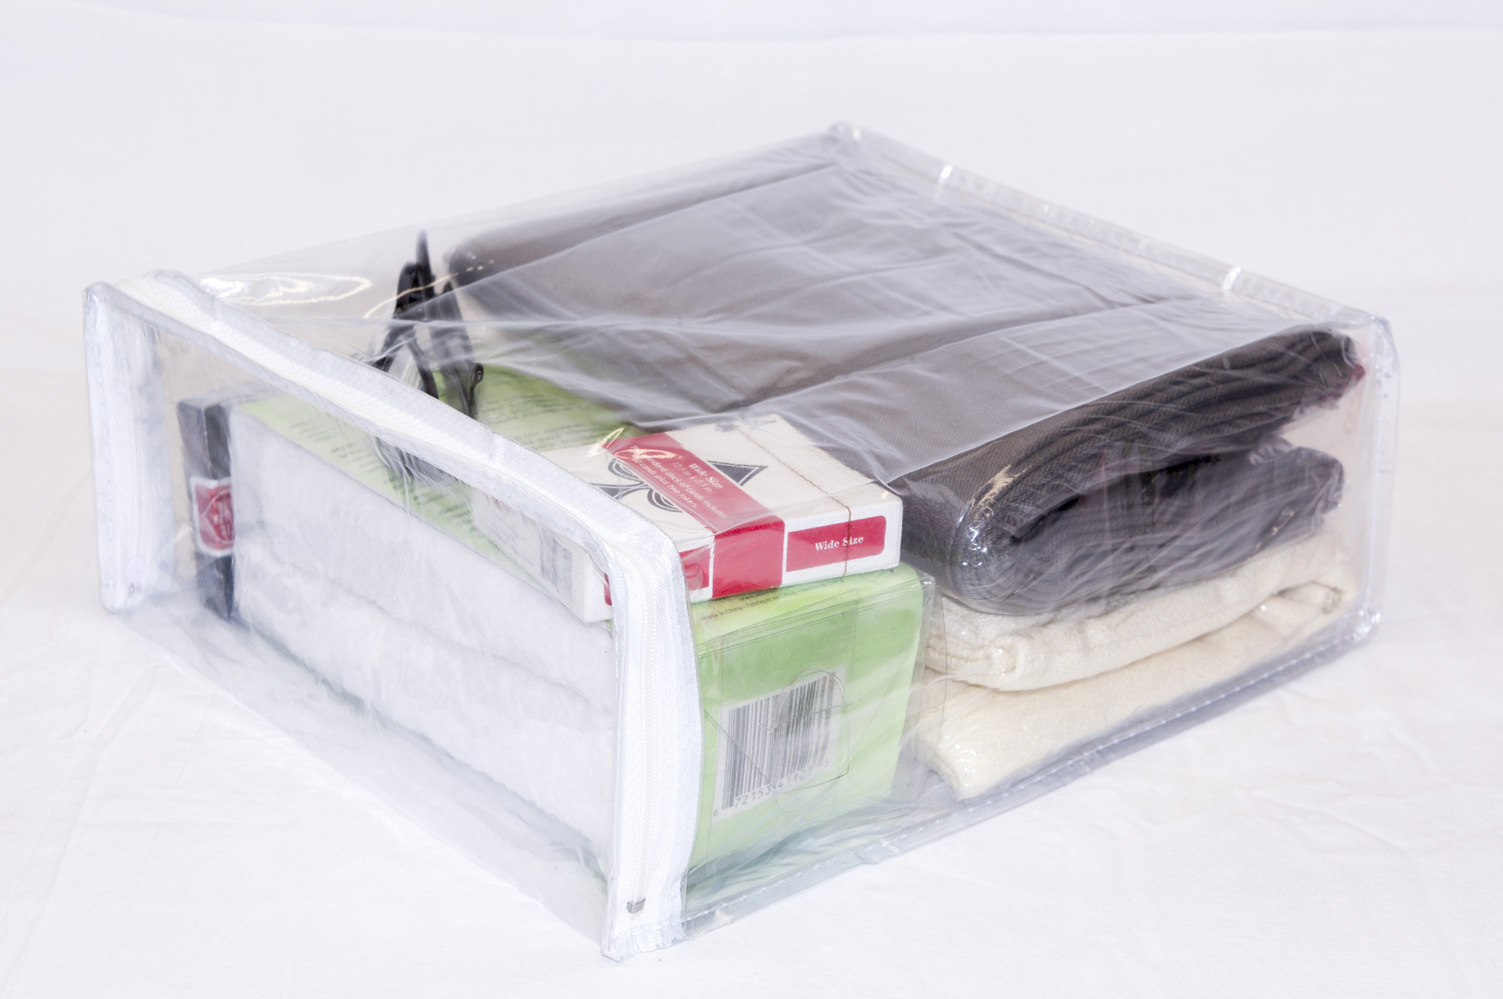 10 Pack Heavy Duty Vinyl Zippered Storage Bags Clear 9 X 11 4 1 7 Gallon